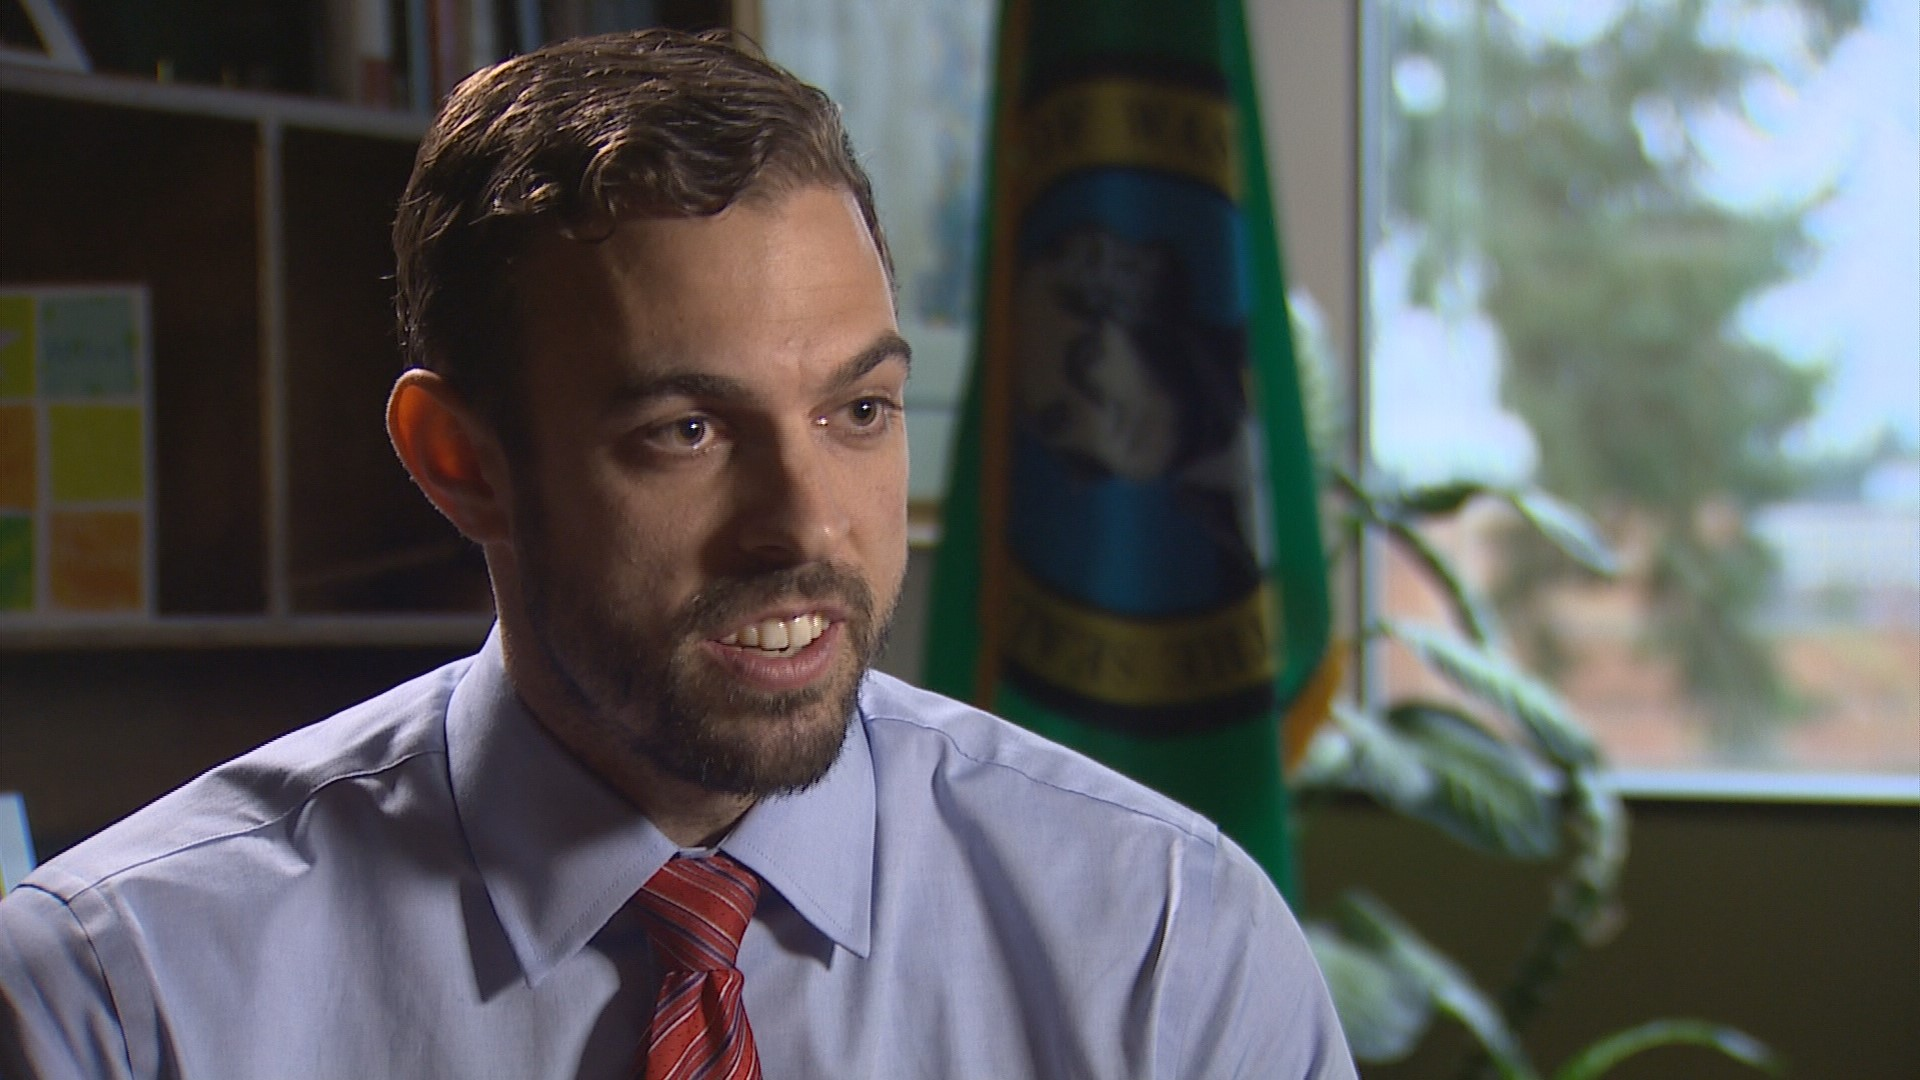 New WA Republican chairman is youngest in country